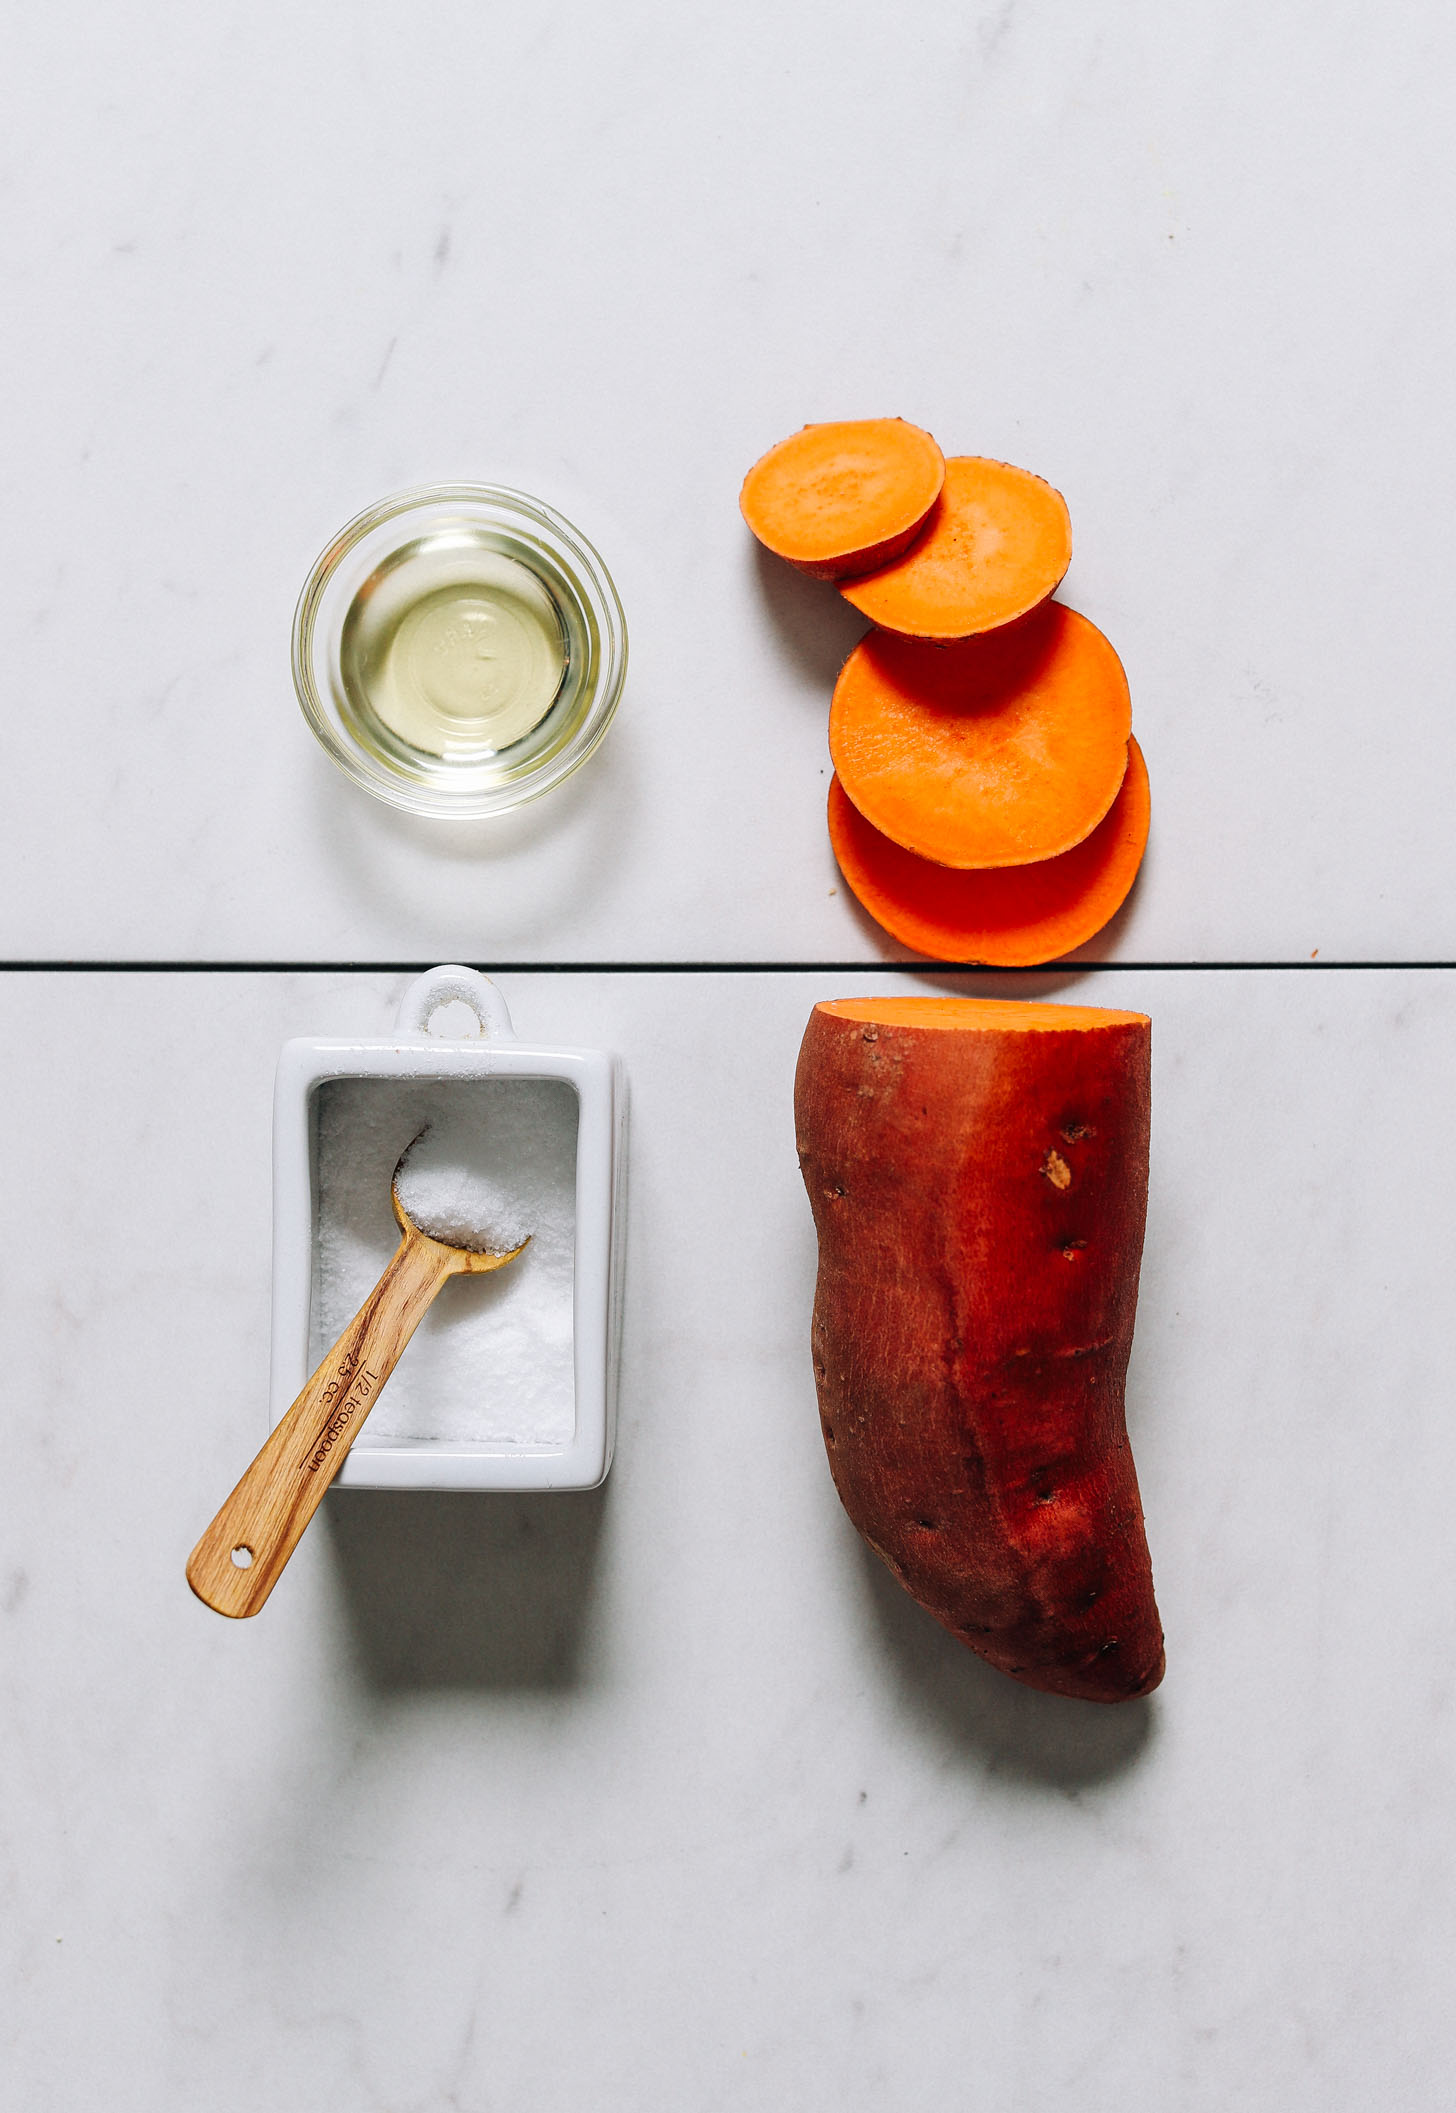 Sliced sweet potato, avocado oil, and salt for making our easy sweet potatoes recipe